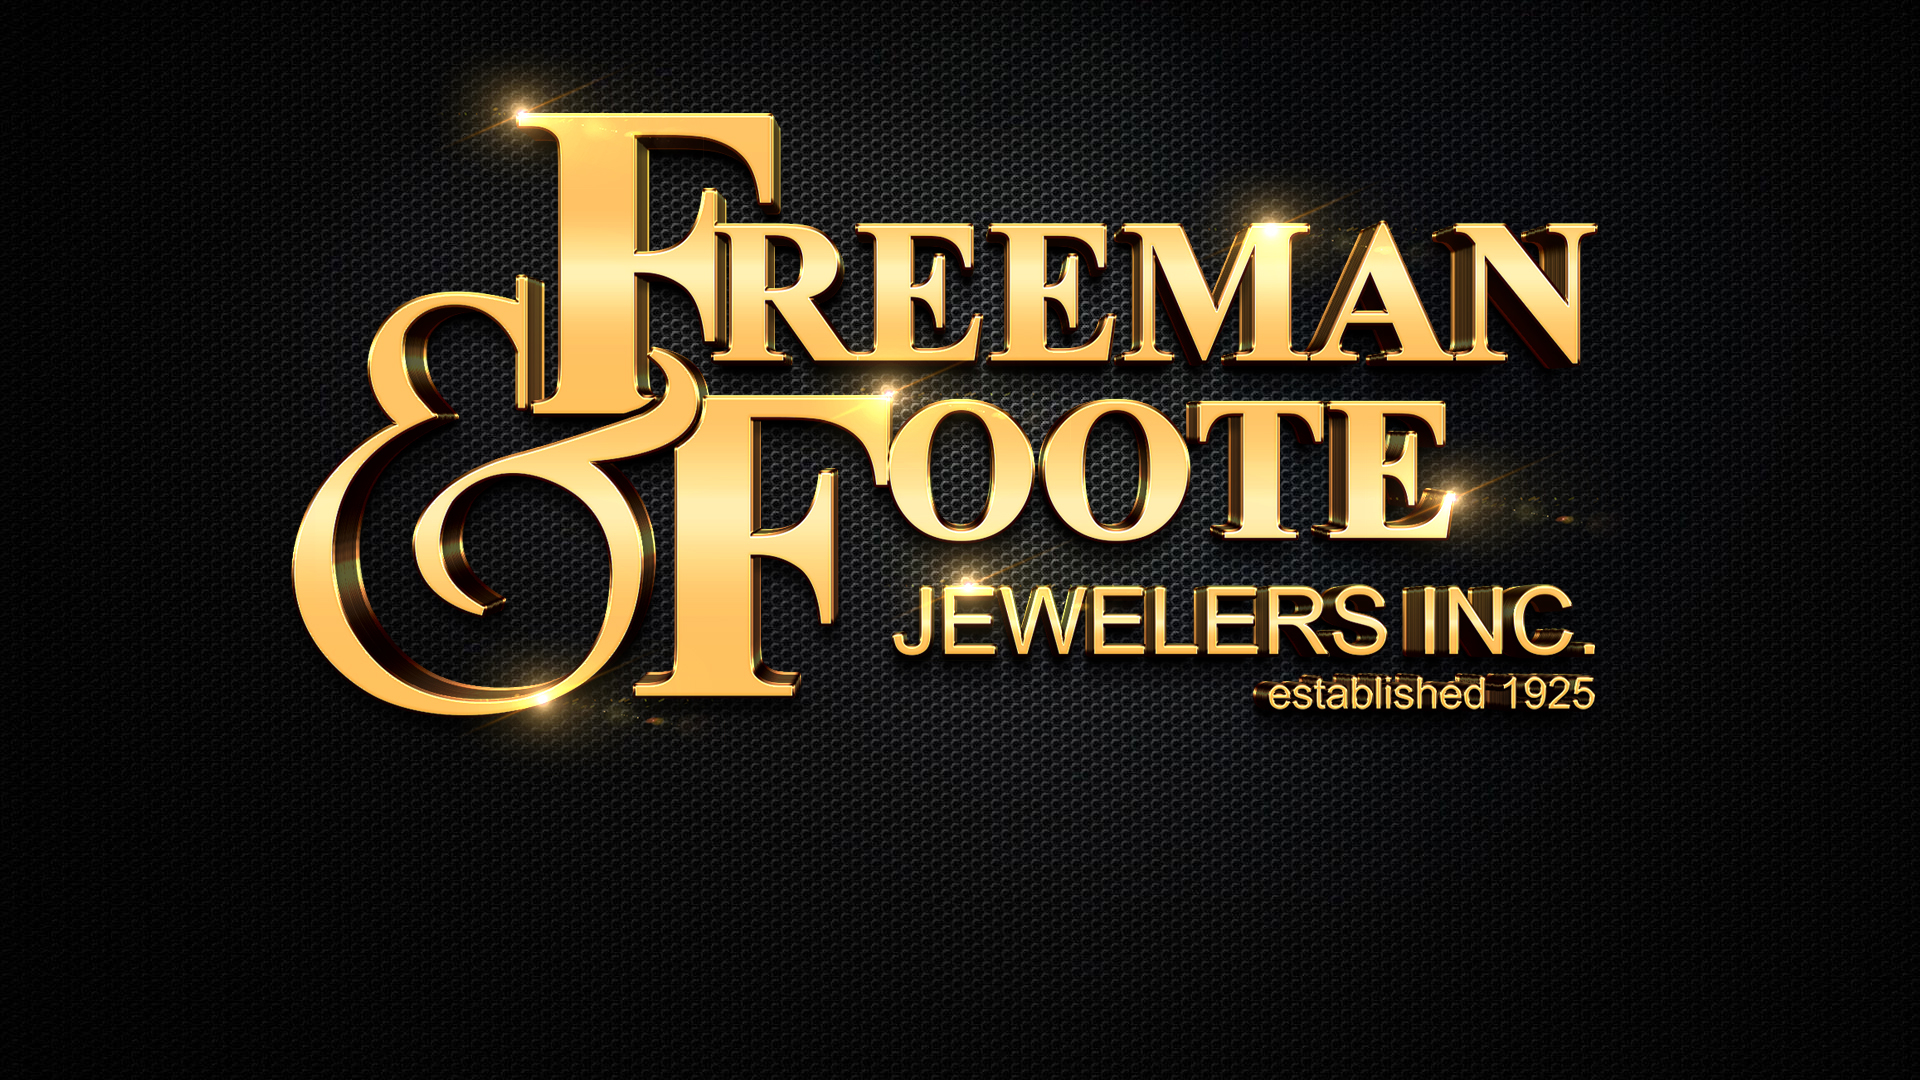 Freeman & Foote Jewelers Inc. in Utica, NY, photo #10